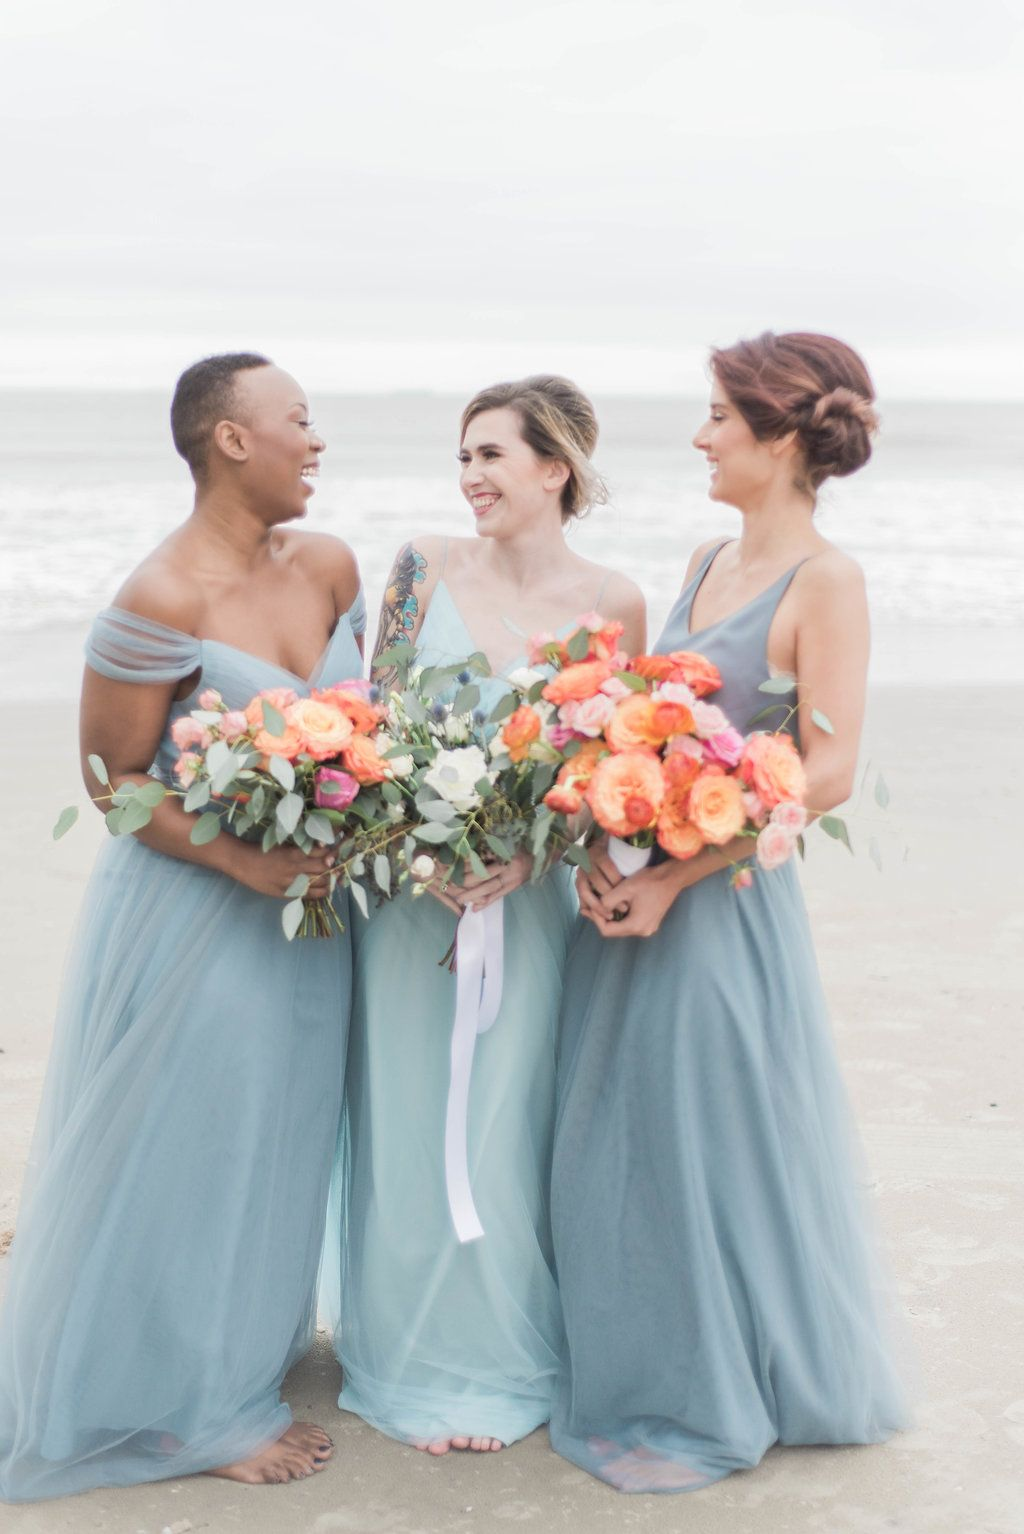 Bridesmaid dress for beach wedding  Love Tanya Bridesmaid Dresses at a gorgeous beach wedding